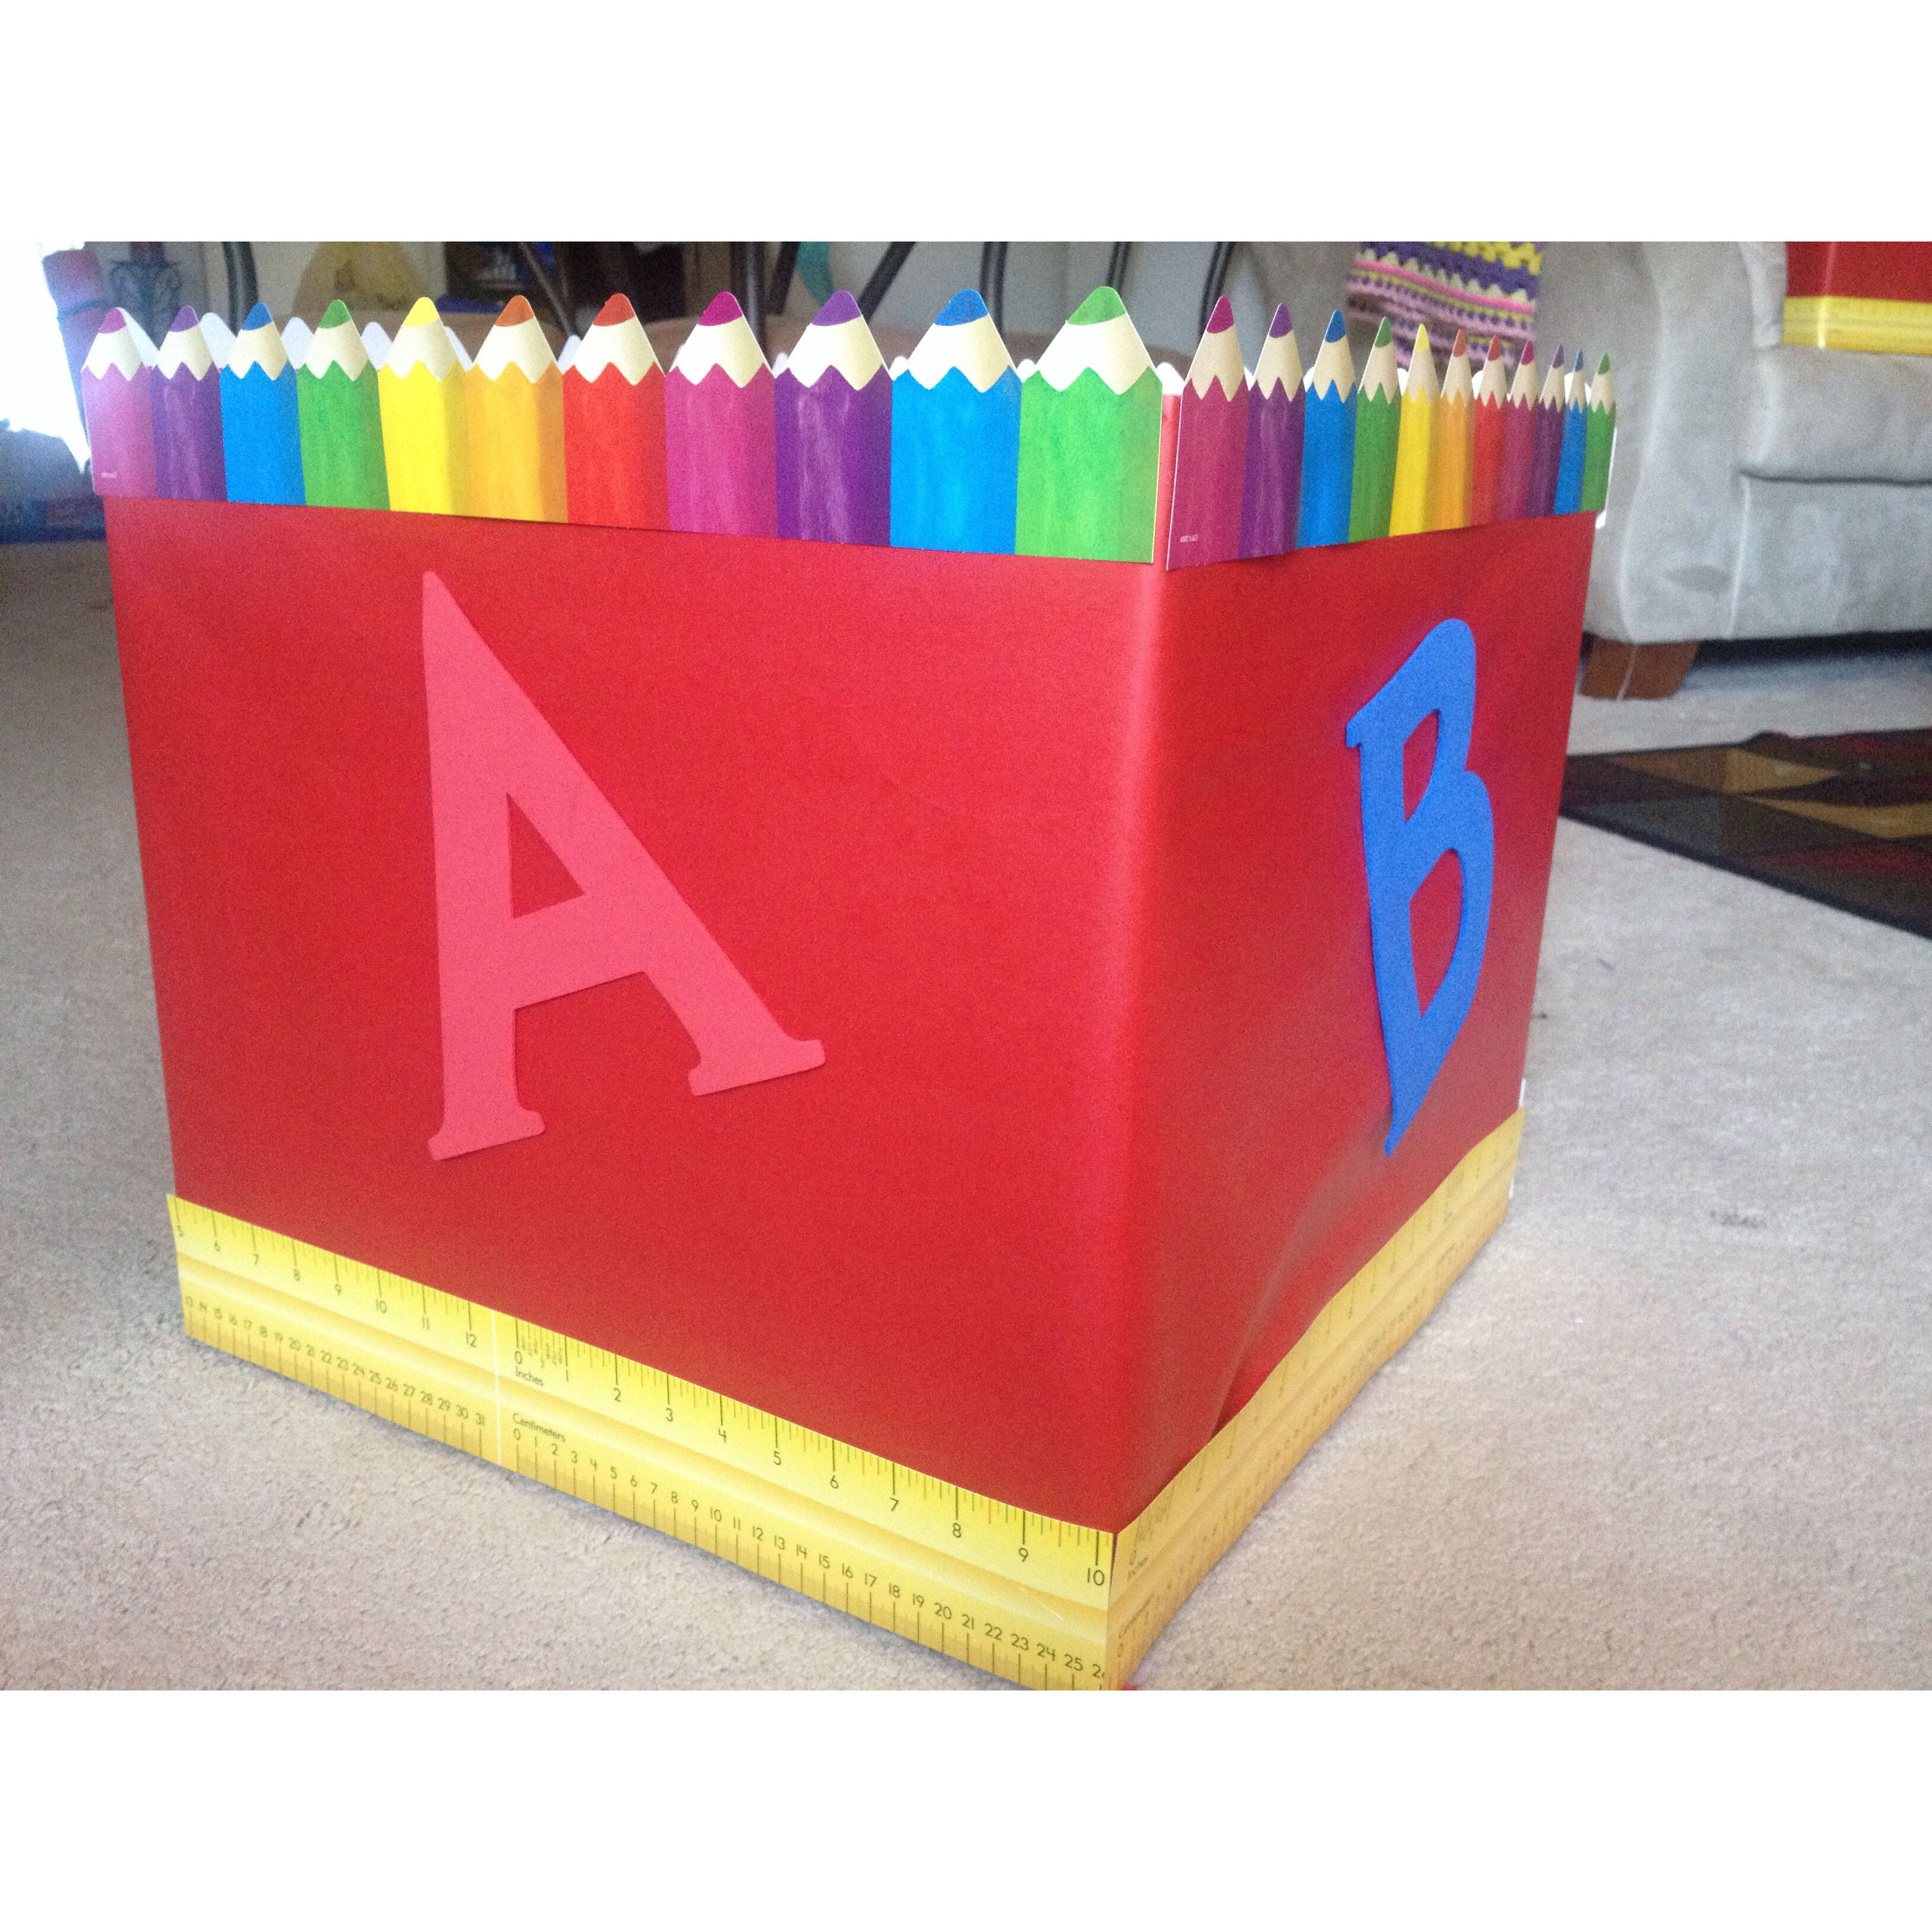 back to school drive donation boxes. very easy to make and